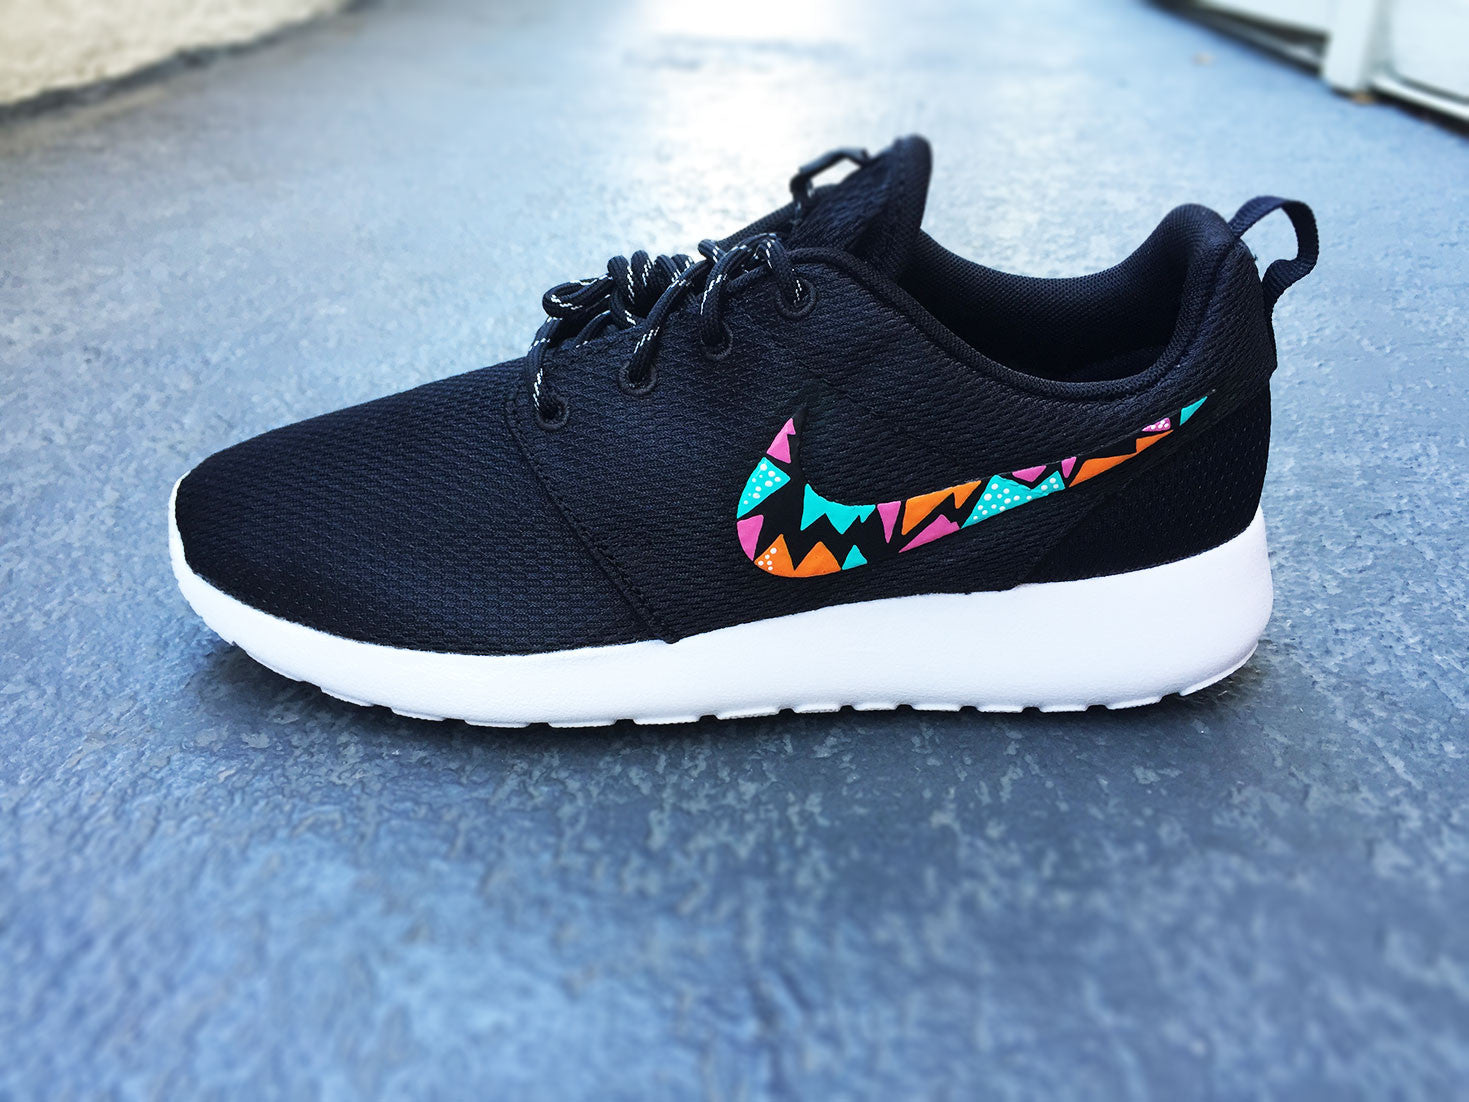 low priced 6a87f 12ac5 Womens Custom Nike Roshe Run sneakers, triangle tribal design, hot pink,  teal and orange, trendy fashion design, cute womens shoes